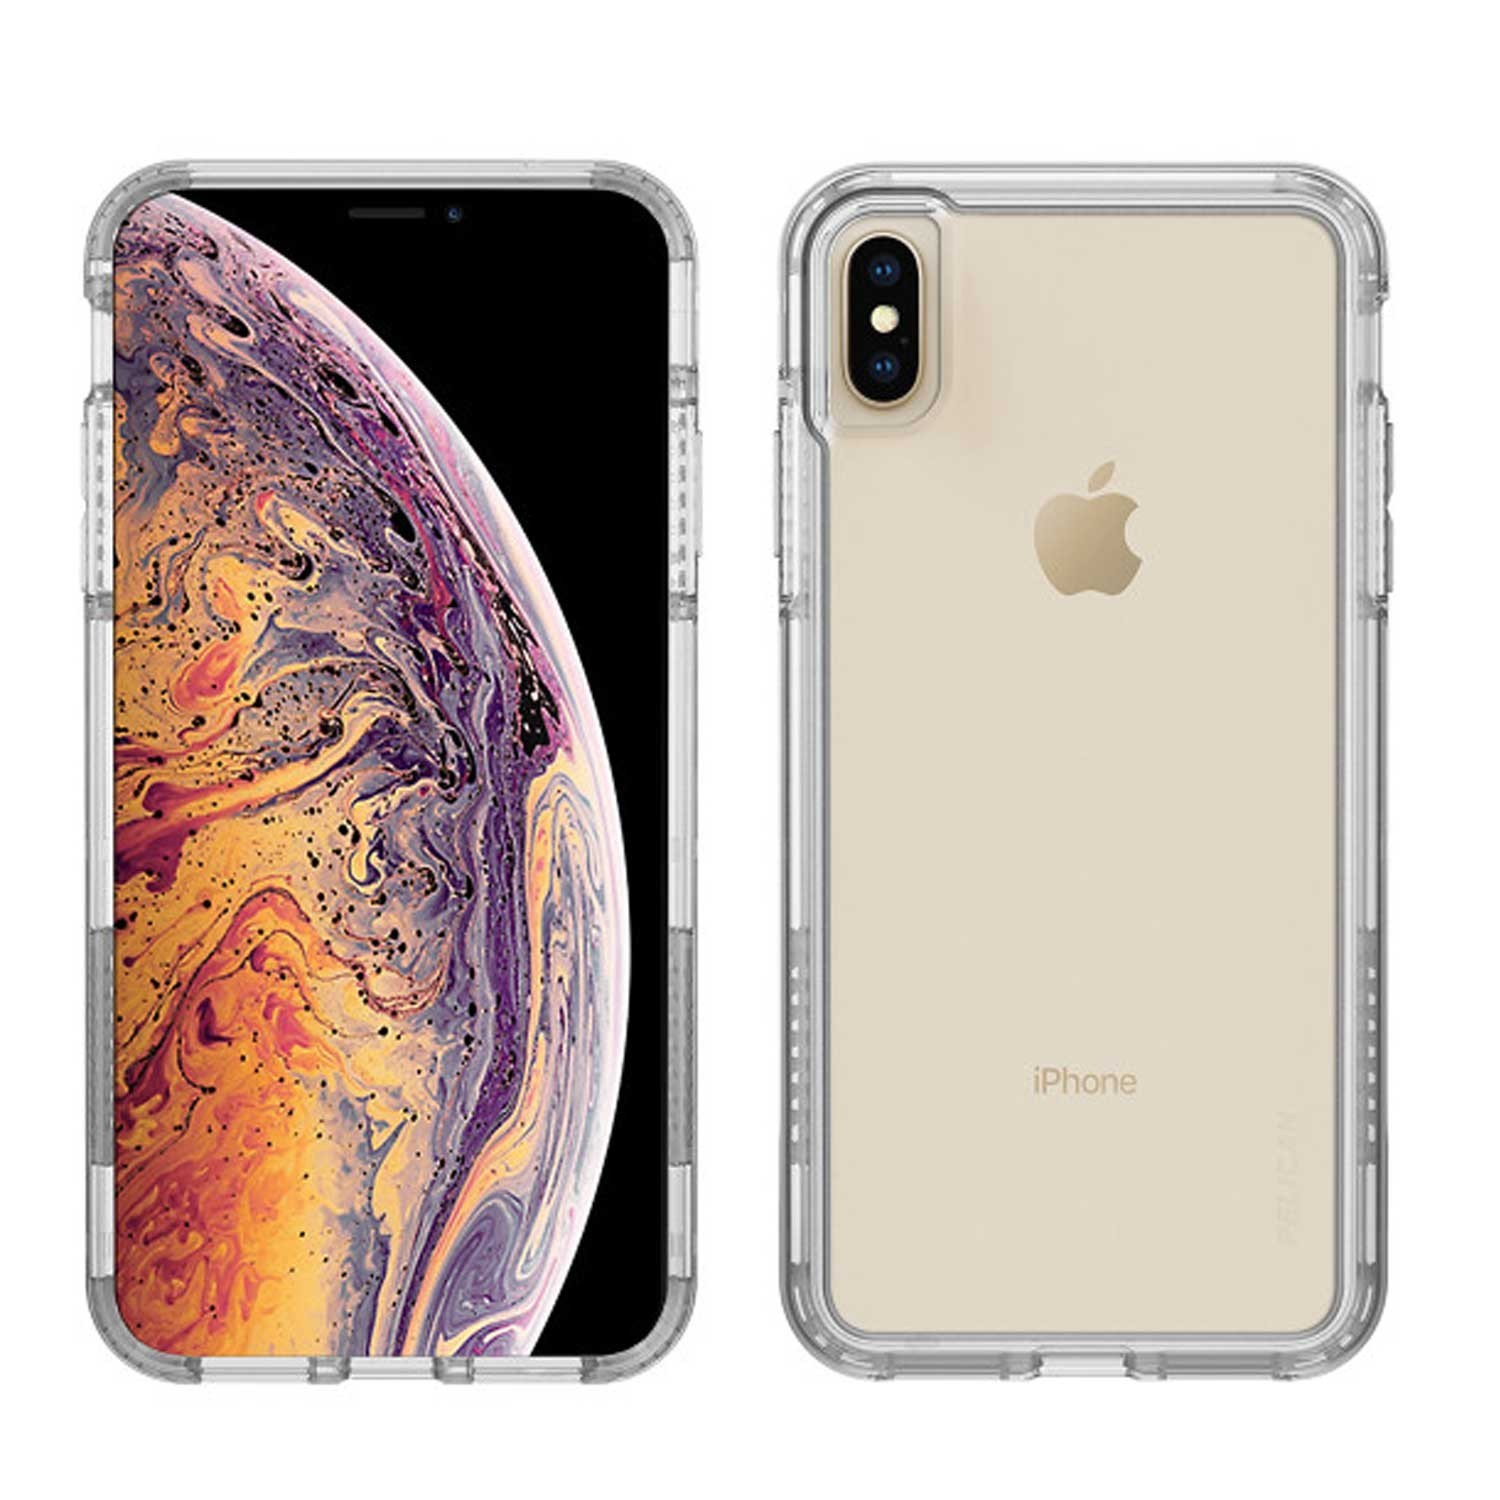 Case - PELICAN Adventurer for iPhone Xs Max Clear